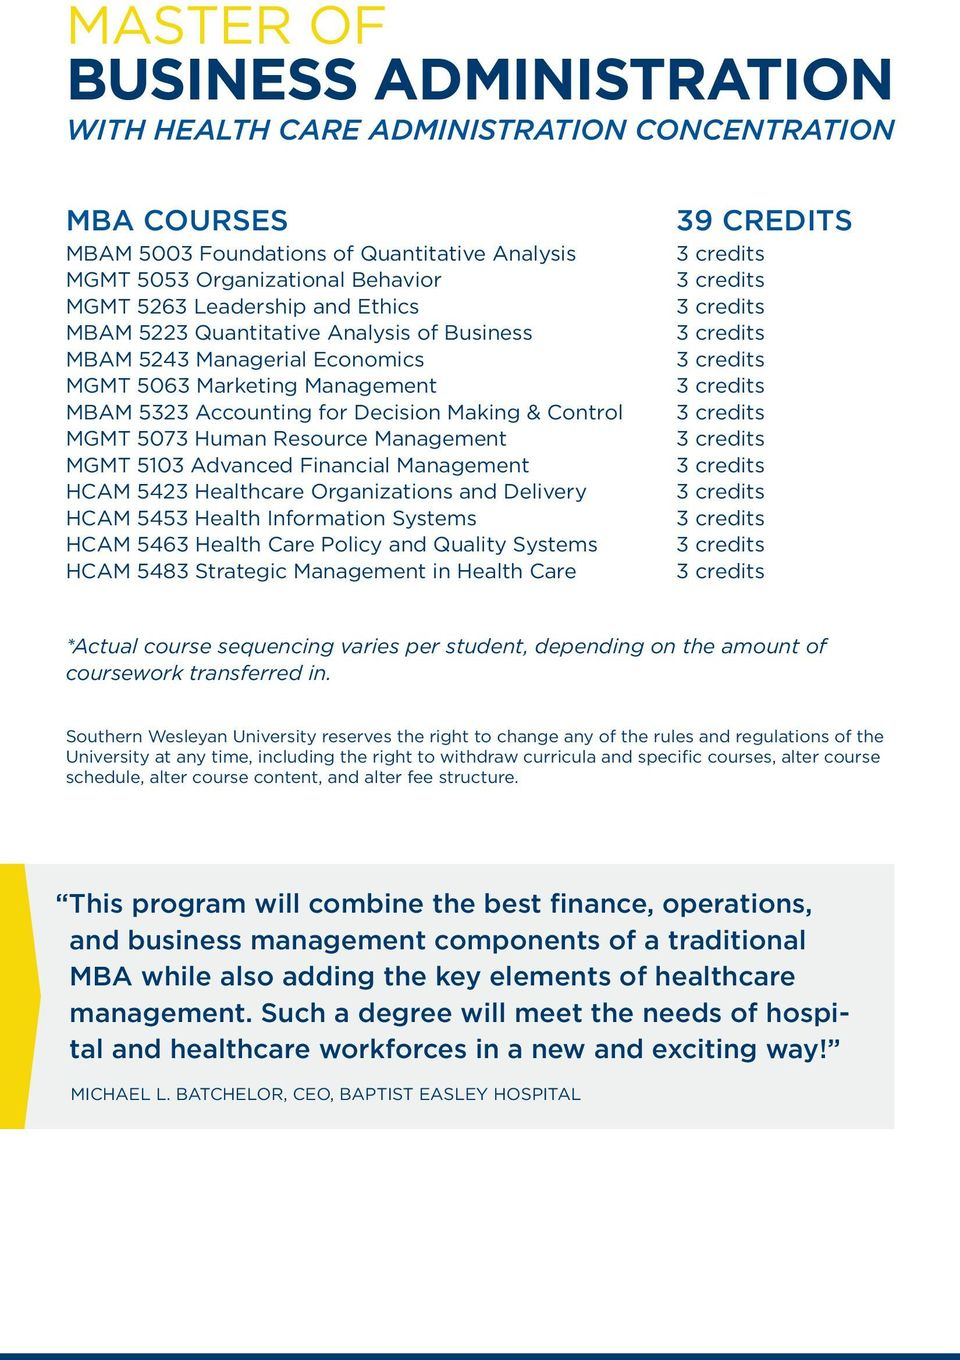 MGMT 5103 Advanced Financial Management HCAM 5423 Healthcare Organizations and Delivery HCAM 5453 Health Information Systems HCAM 5463 Health Care Policy and Quality Systems HCAM 5483 Strategic